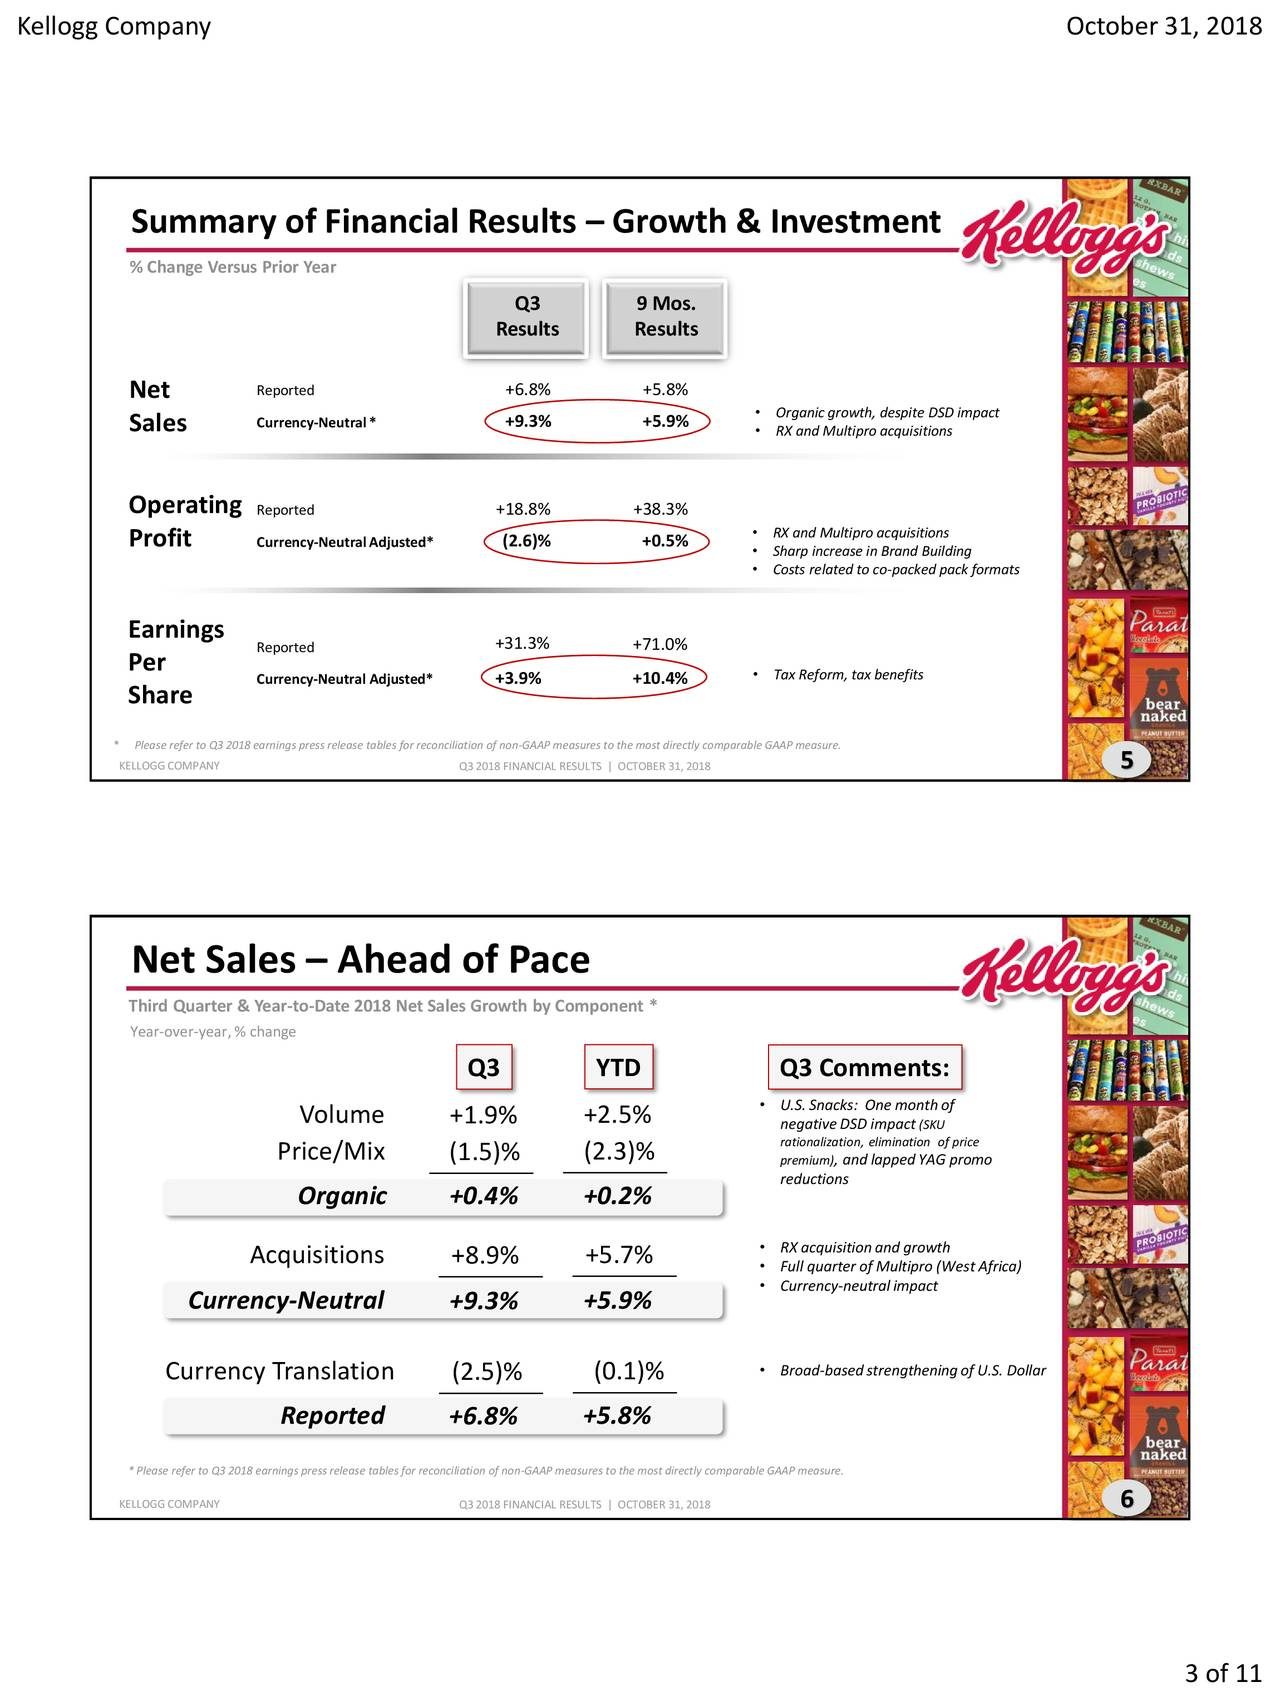 Summary of Financial Results – Growth & Investment % Change Versus Prior Year Q3 9 Mos. Results Results Reported +6.8% +5.8% Net Sales Currency-Neutral* +9.3% +5.9% • Organic growth, despite DSD impact • RX and Multipro acquisitions Operating Reported +18.8% +38.3% Profit Currency-NeutralAdjusted* (2.6)% +0.5% • RX and Multipro acquisitions • Sharp increase in Brand Building • Costs related to co-packed pack formats Earnings Reported +31.3% +71.0% Per Currency-Neutral Adjusted* +3.9% +10.4% • Tax Reform, tax benefits Share * Please refer to Q3 2018 earnings press release tables for reconciliation of non-GAAP measures to the most directly comparable GAAP measure. KELLOGGCOMPANY Q3 2018 FINANCIAL RESULTS | OCTOBER 31, 2018 5 Net Sales – Ahead of Pace Third Quarter & Year-to-Date 2018 Net Sales Growth by Component * Year-over-year, % change Q3 YTD Q3 Comments: Volume +1.9% +2.5% • U.S. Snacks: One month of rationalization, elimination of price Price/Mix (1.5)% (2.3)% premiu, and lapped YAG promo reductions Organic +0.4% +0.2% Acquisitions +5.7% • RX acquisition and growth +8.9% • Full quarter of Multipro (West Africa) • Currency-neutralimpact Currency-Neutral +9.3% +5.9% • Broad-based strengthening of U.S. Dollar Currency Translation (2.5)% (0.1)% Reported +6.8% +5.8% * Please refer to Q3 2018 earnings press release tables for reconciliation of non-GAAP measures to the most directly comparable GAAP measure. KELLOGGCOMPANY Q3 2018 FINANCIAL RESULTS | OCTOBER 31, 2018 6 3 of 11